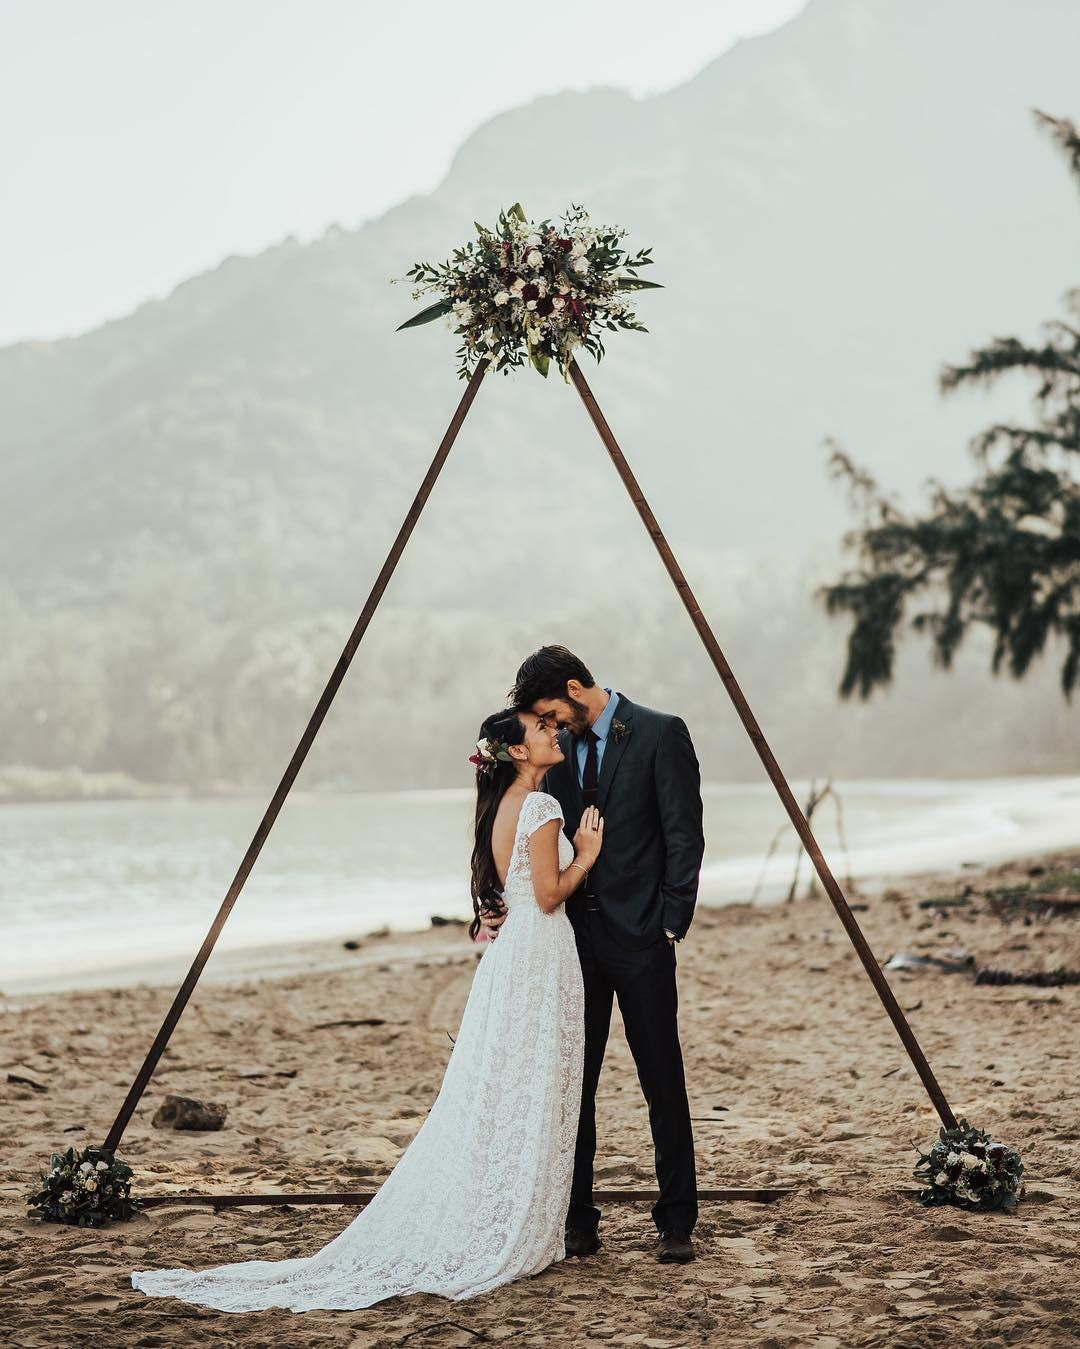 Belongil Beach Wedding Ceremony: Triangle Ceremony Arches Take Your Modern Bohemian Wedding